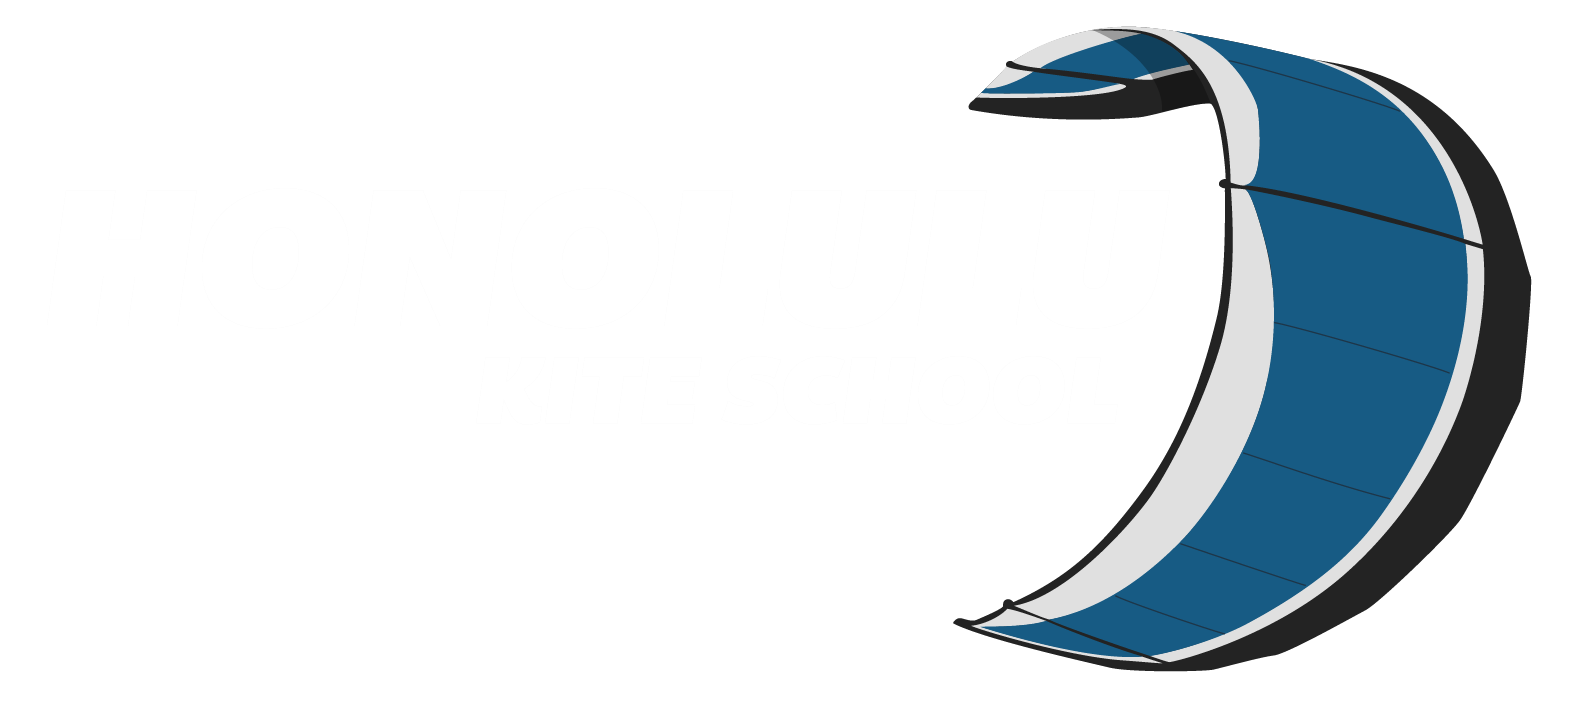 Clipart kite beach. Honolulu school oahu kitesurfing